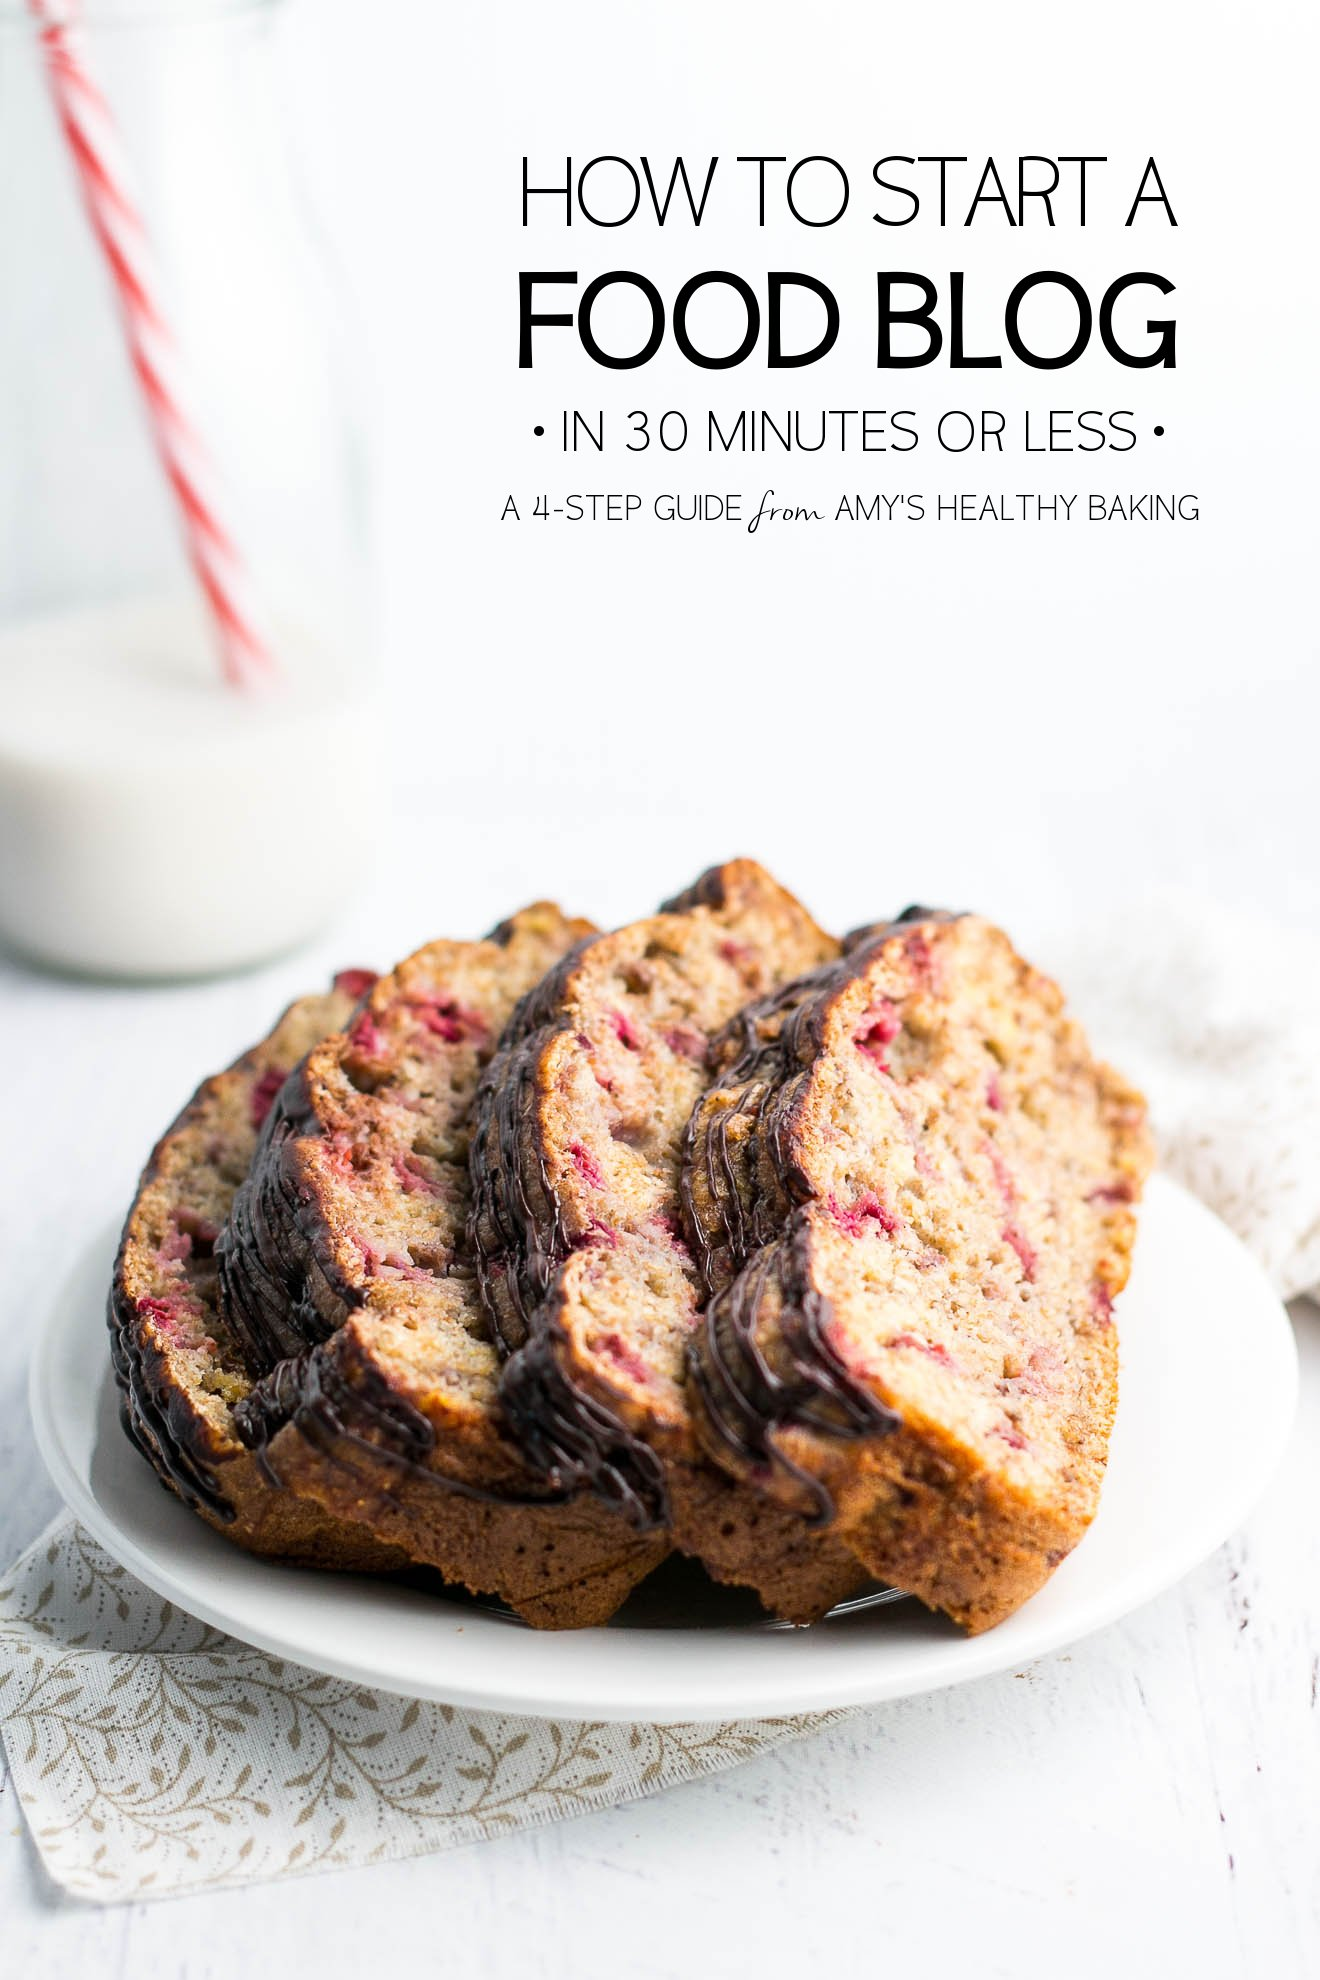 How to Start a Food Blog in Just 30 Minutes (Or Less!) | An easy 4-step guide from amyshealthybaking.com